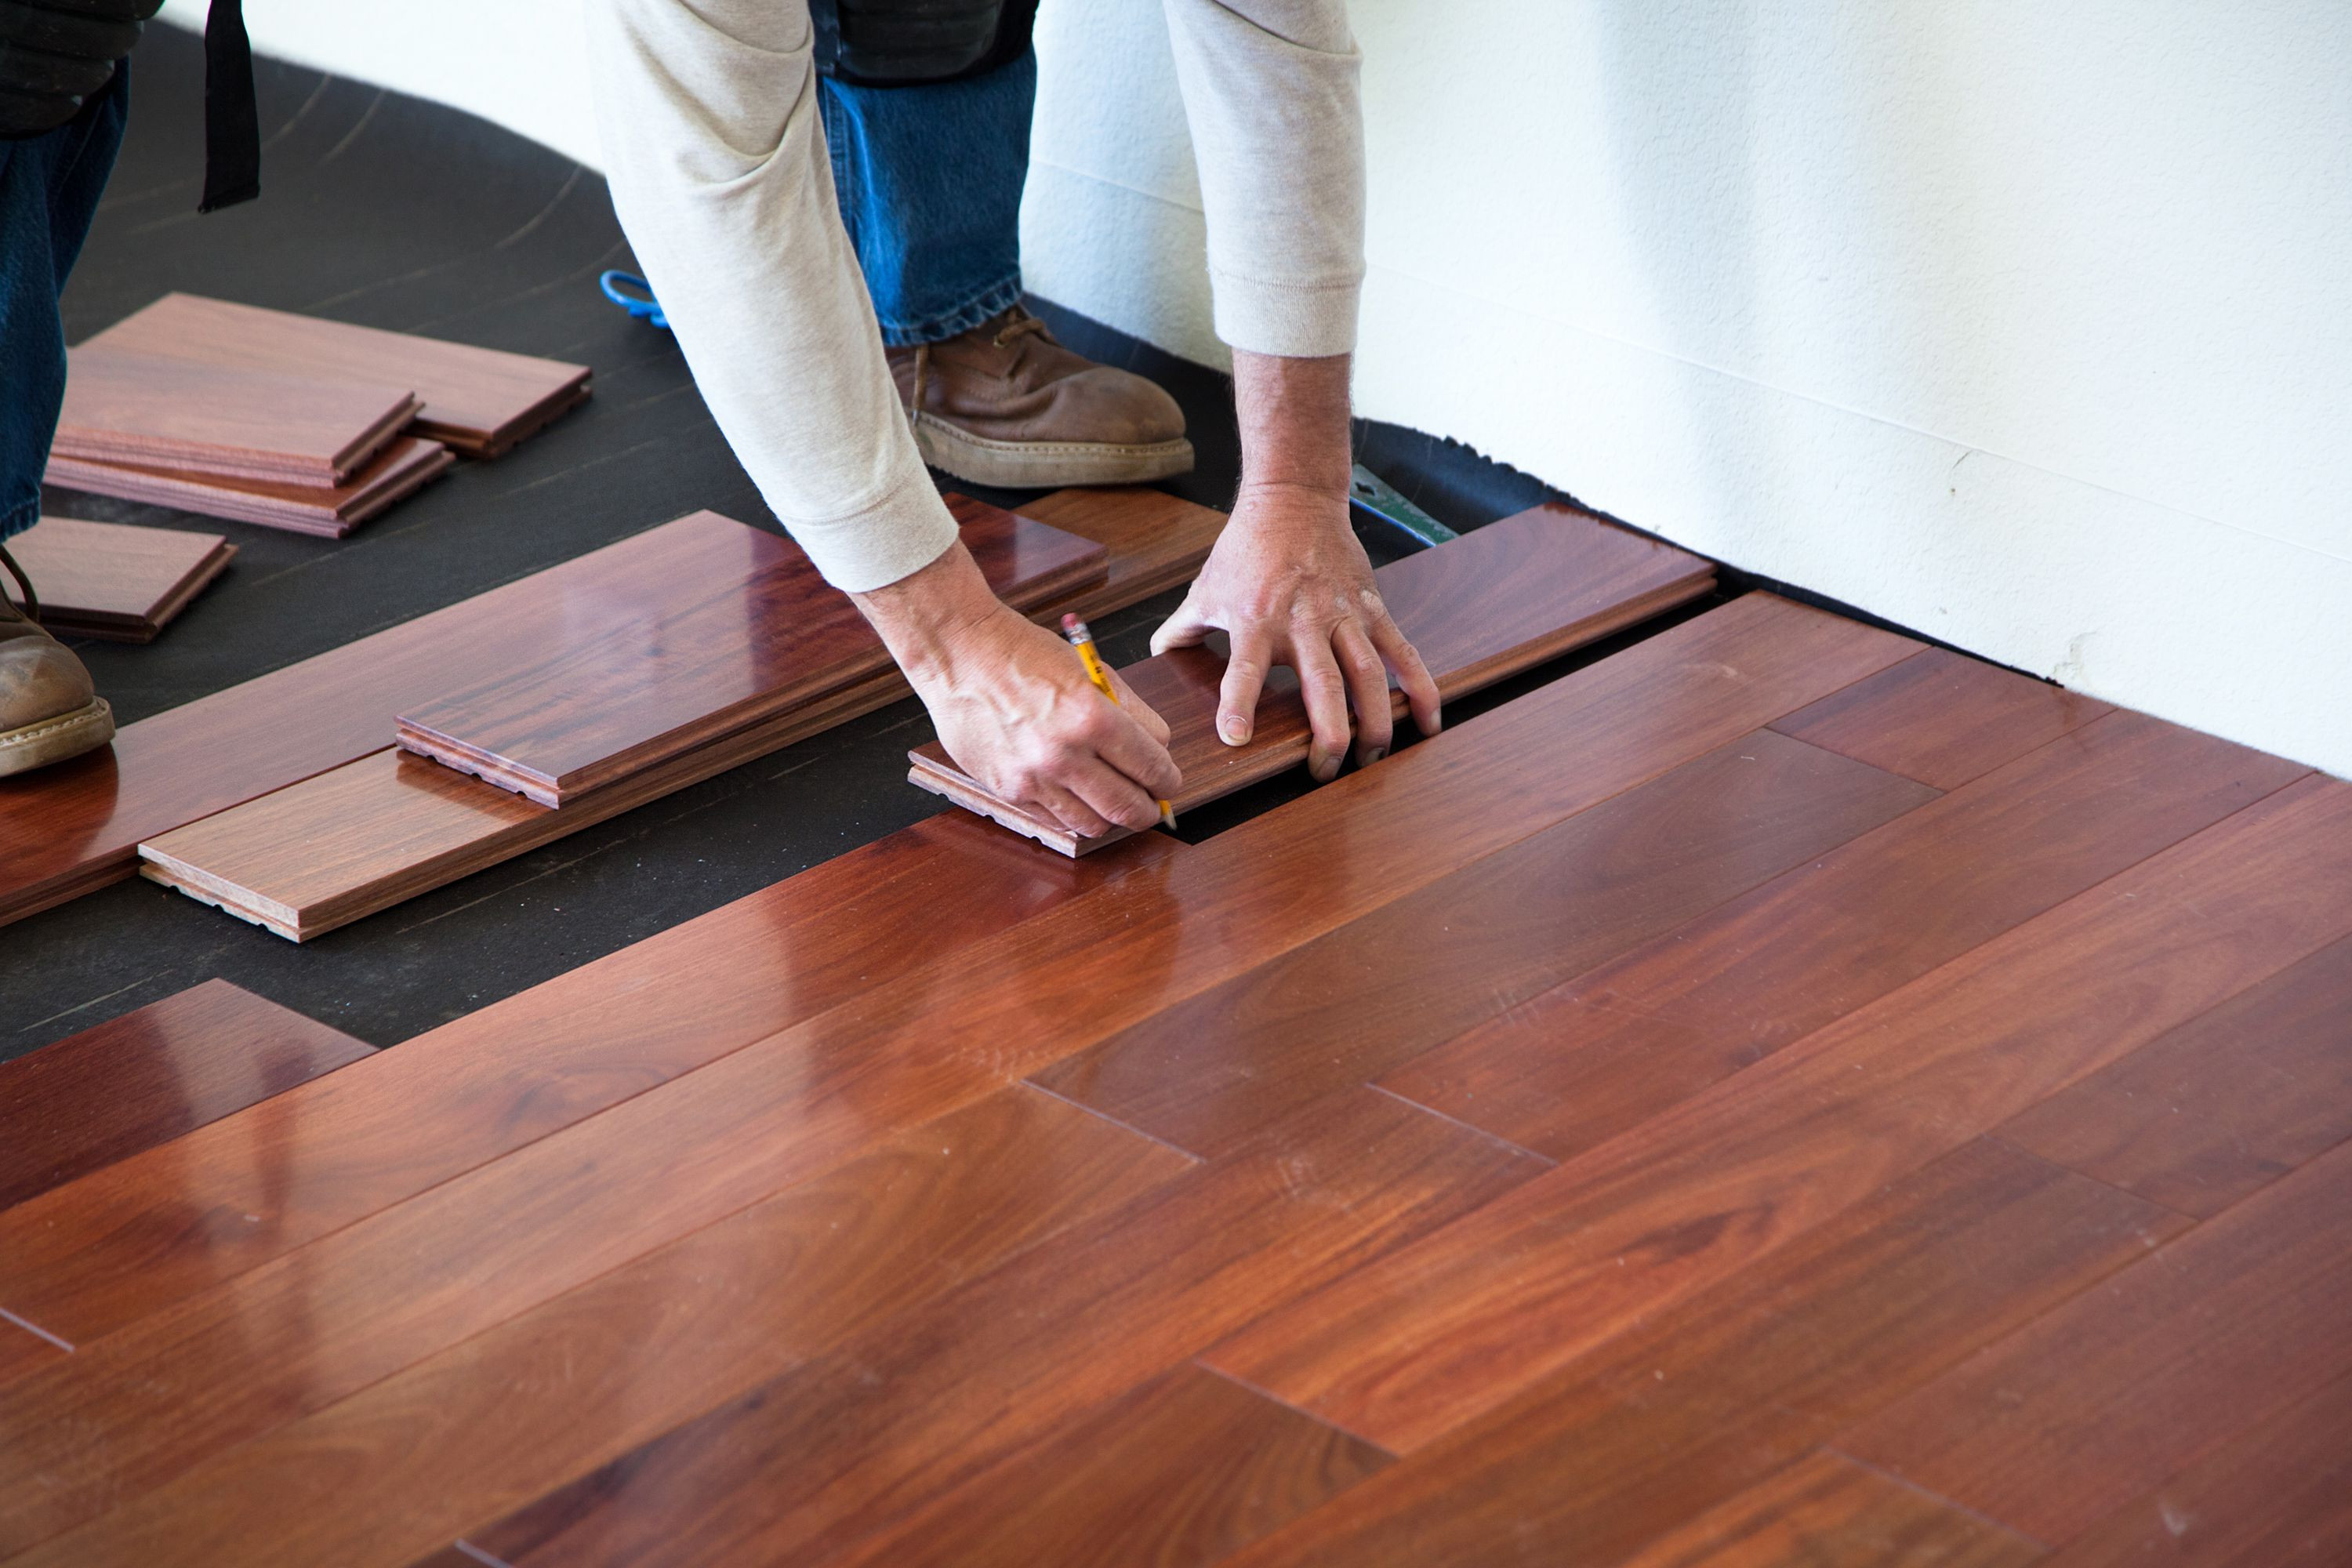 18 Fashionable Hardwood Floor Underlayment Types 2021 free download hardwood floor underlayment types of the subfloor is the foundation of a good floor throughout installing hardwood floor 170040982 582b748c5f9b58d5b17d0c58